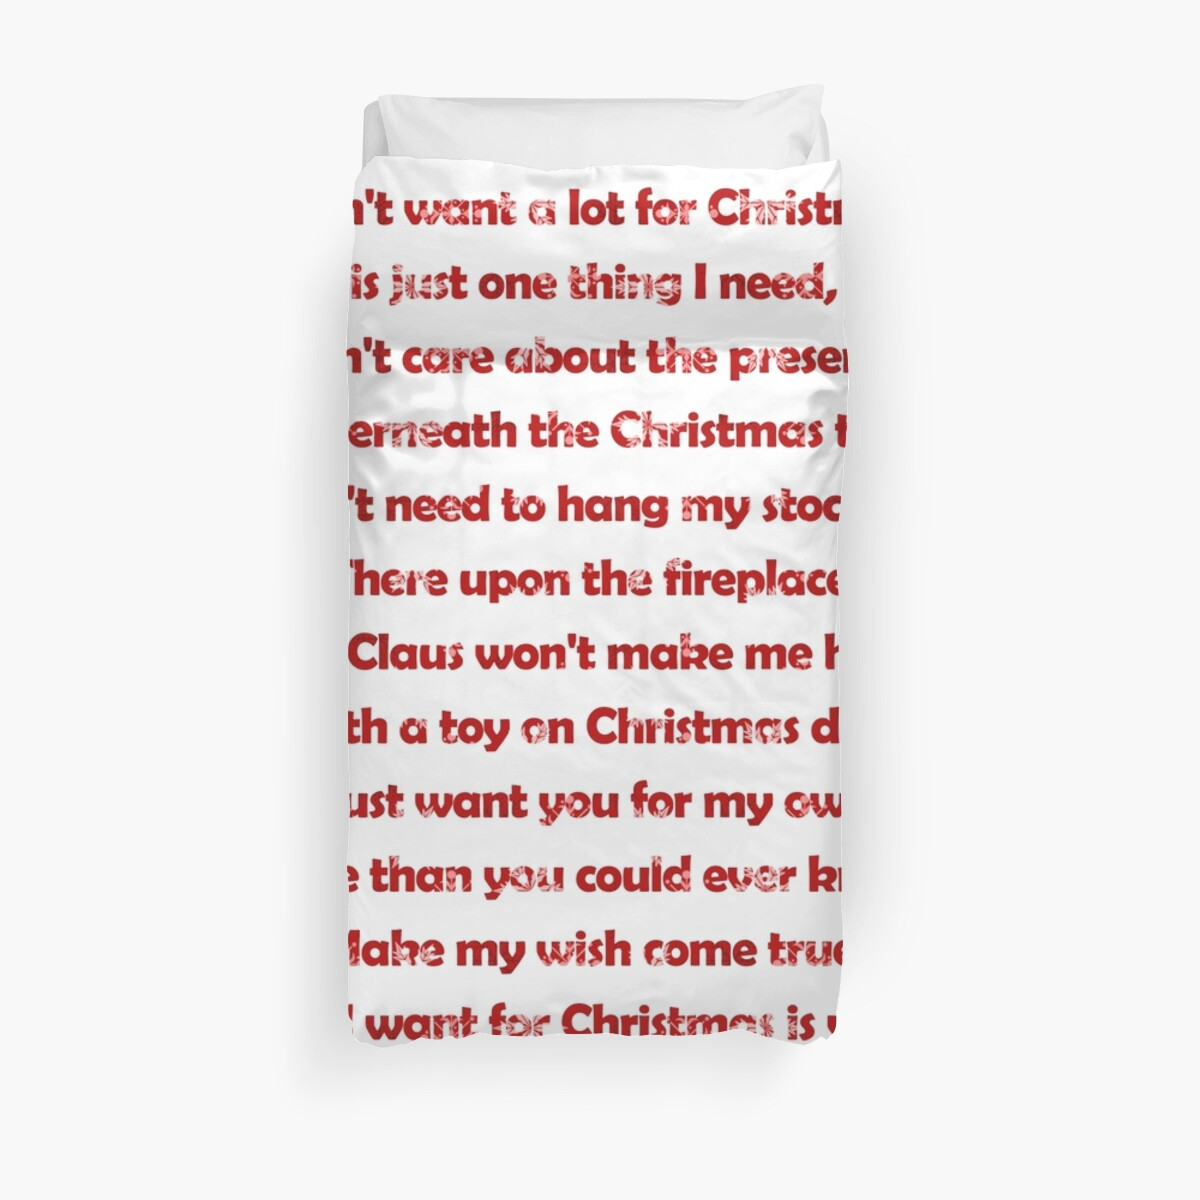 Mariah Carey All I Want For Christmas Is You Lyrics.Mariah Carey All I Want For Christmas Is You Lyrics Duvet Cover By Laura Downing